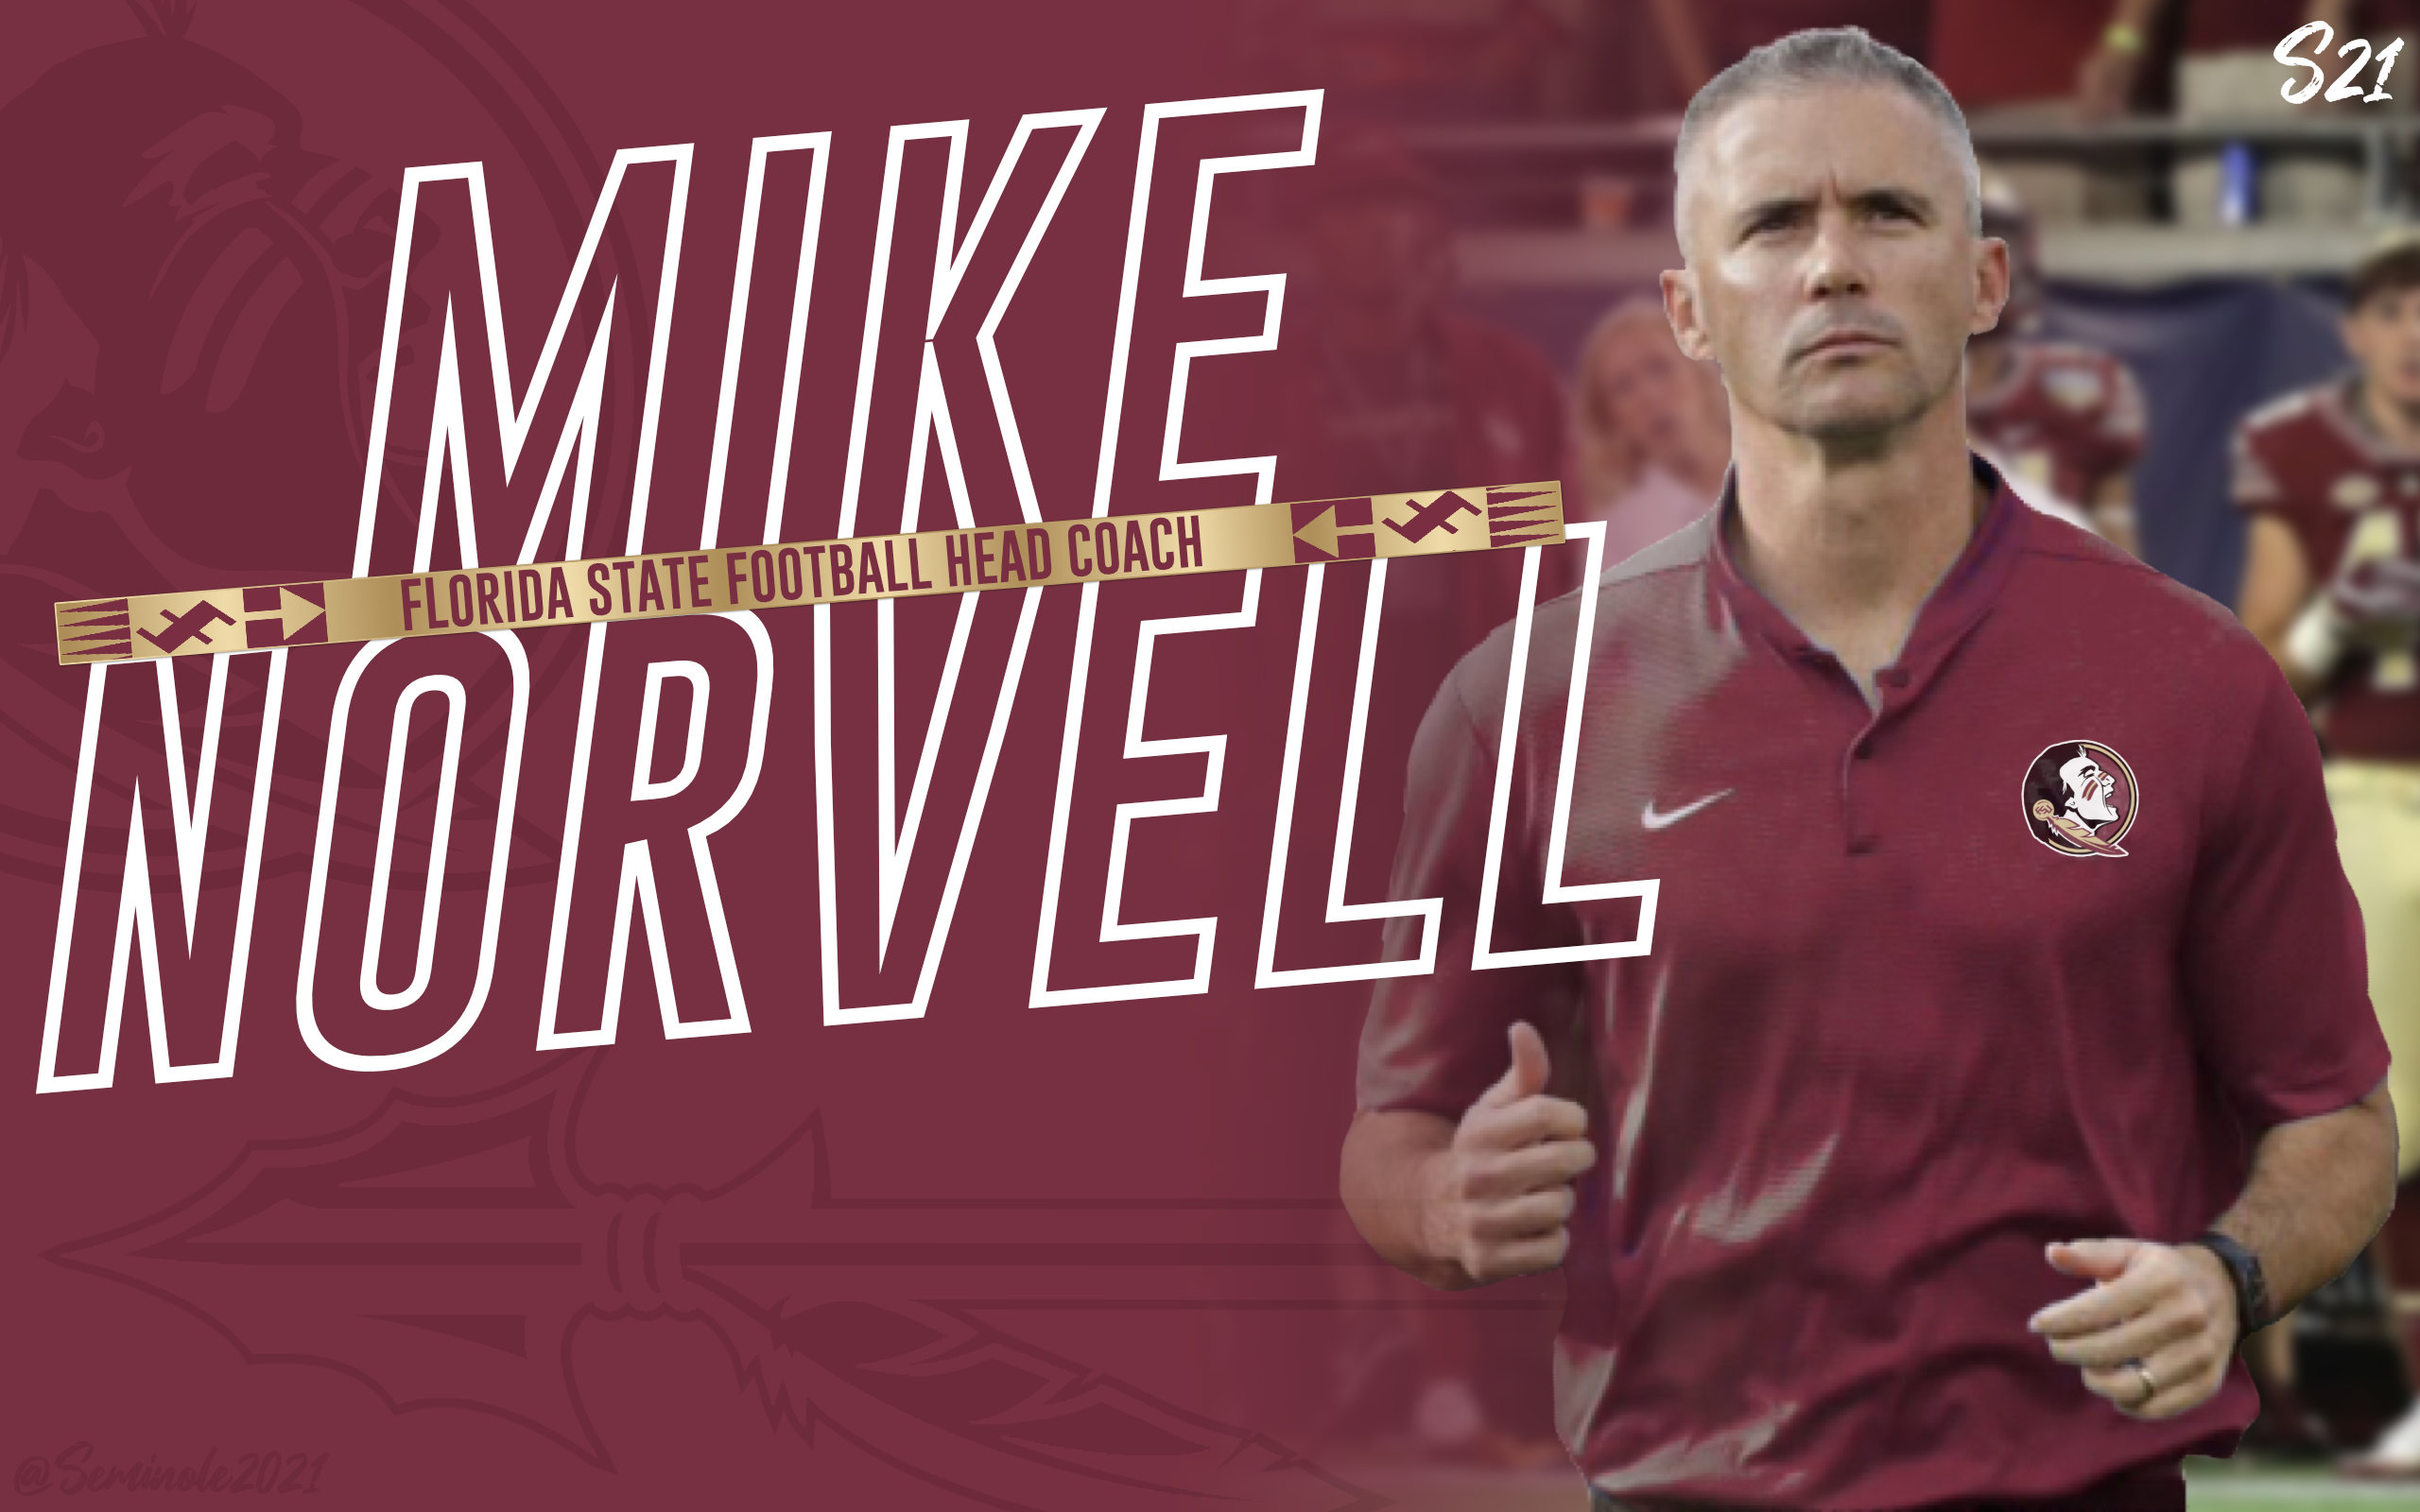 FSU's Norvell Talks with 36 Degrees About Bobby Bowden, Connecting Past to Present